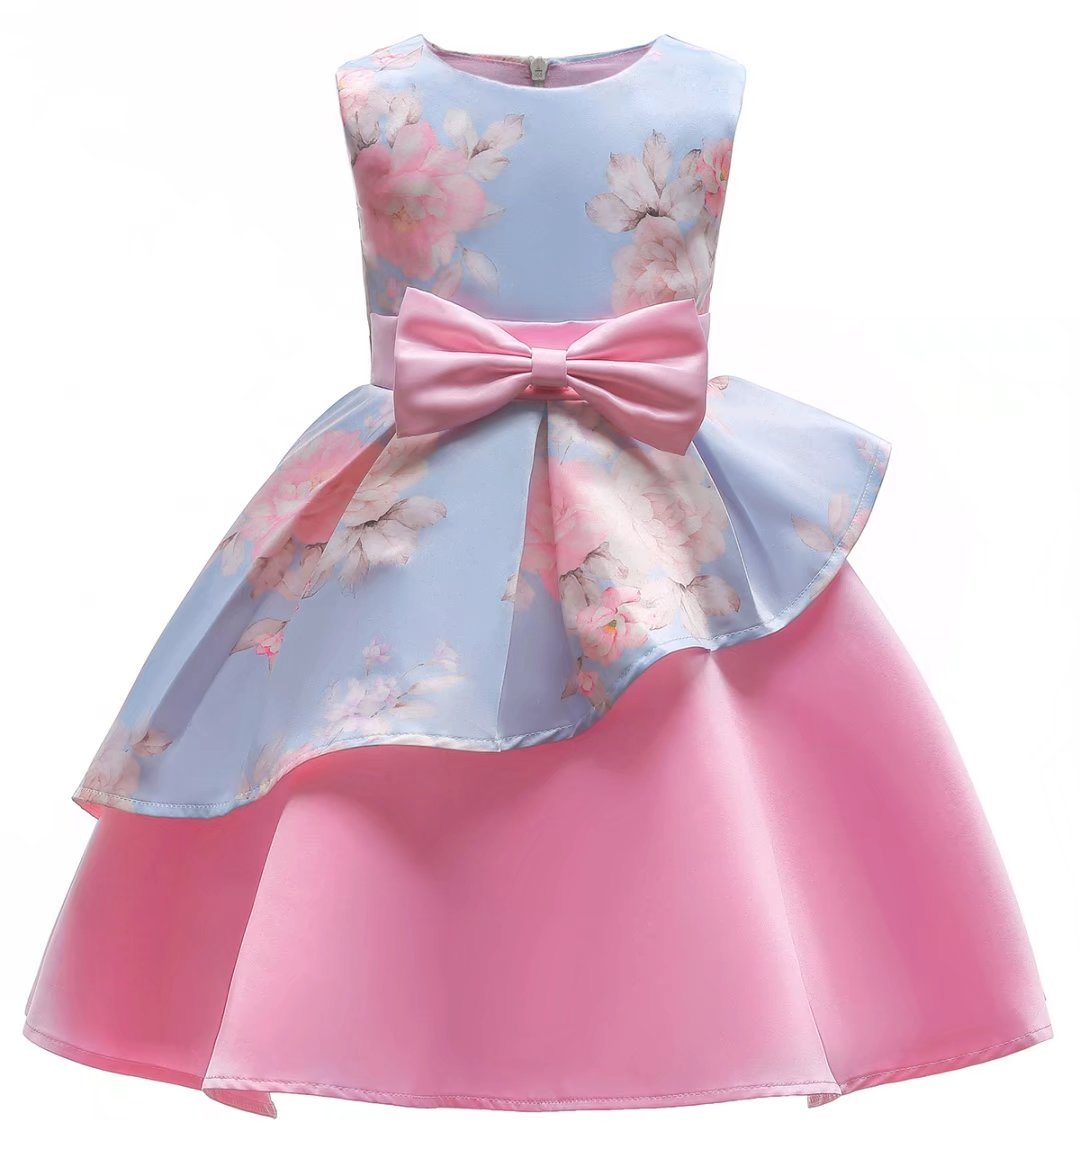 AYOMIS Litter Big Girl Dress Princess Gowns Bow Party Wedding Dresses(Flower-Pink,5-6Y)